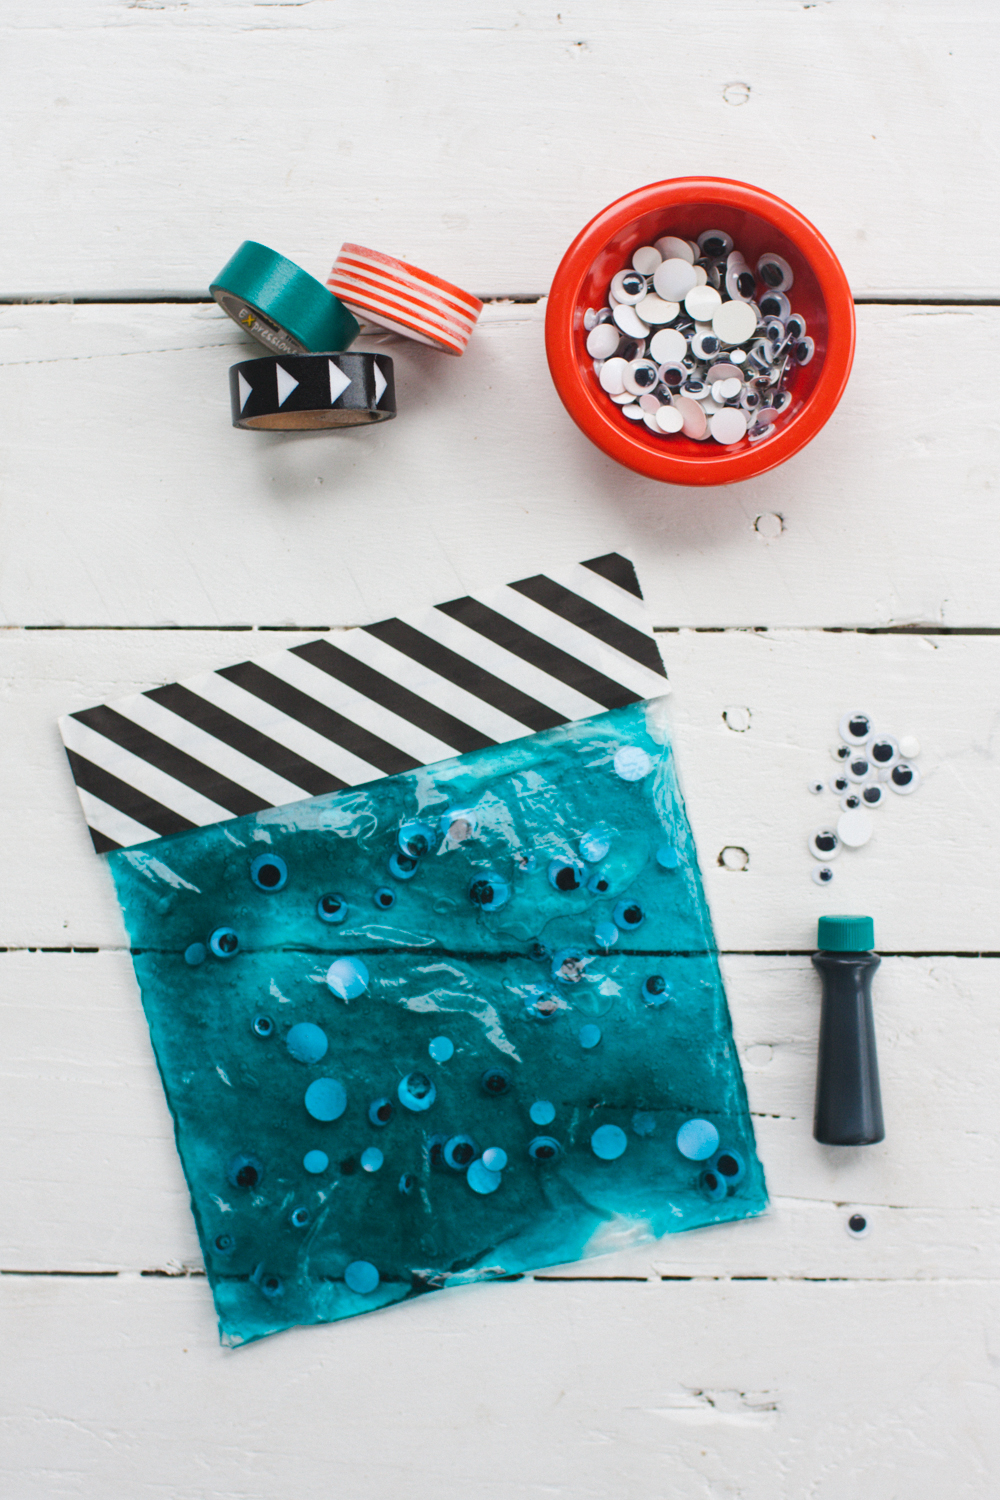 rae-ann-kelly-googly-eye-sensory-bag-9746